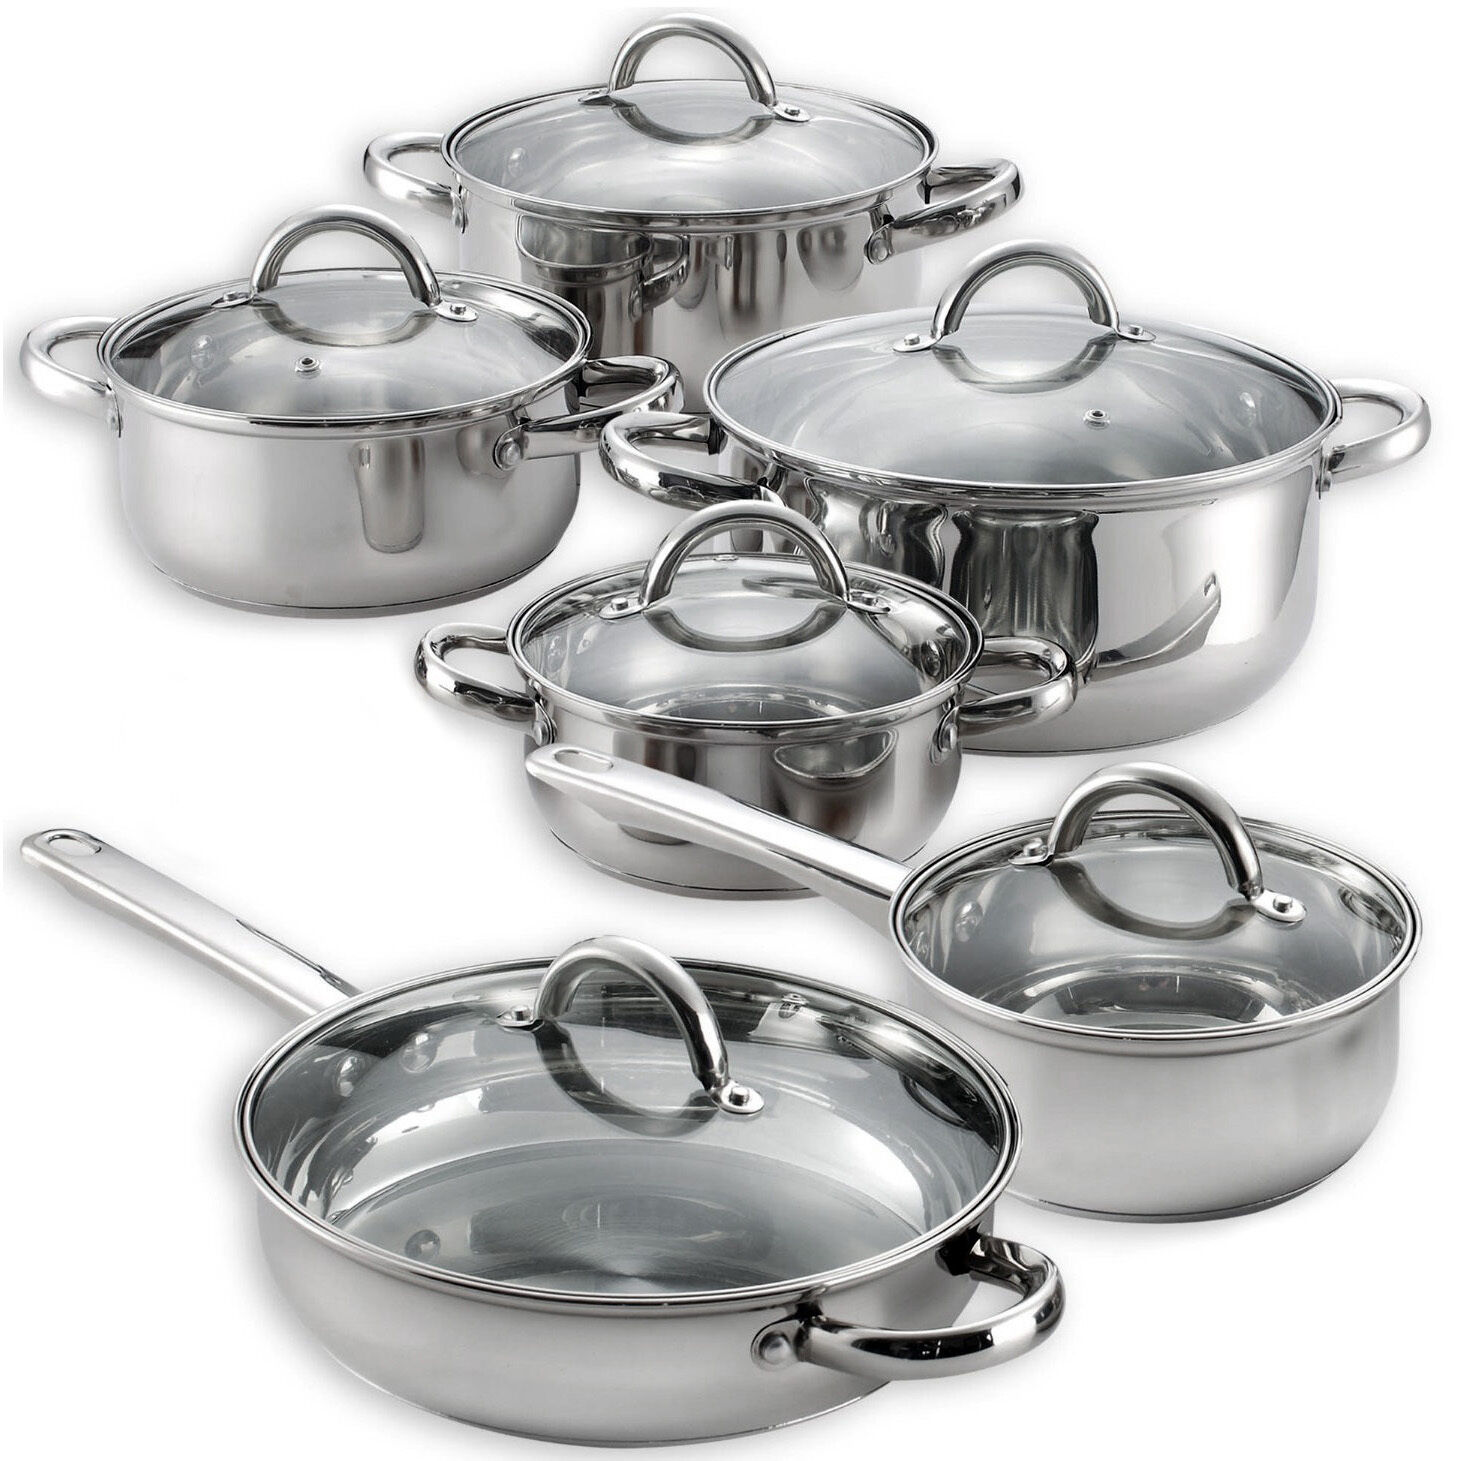 kitchen cookware sets table chandelier heim 39s 12 pieces cooking pots and pans stainless